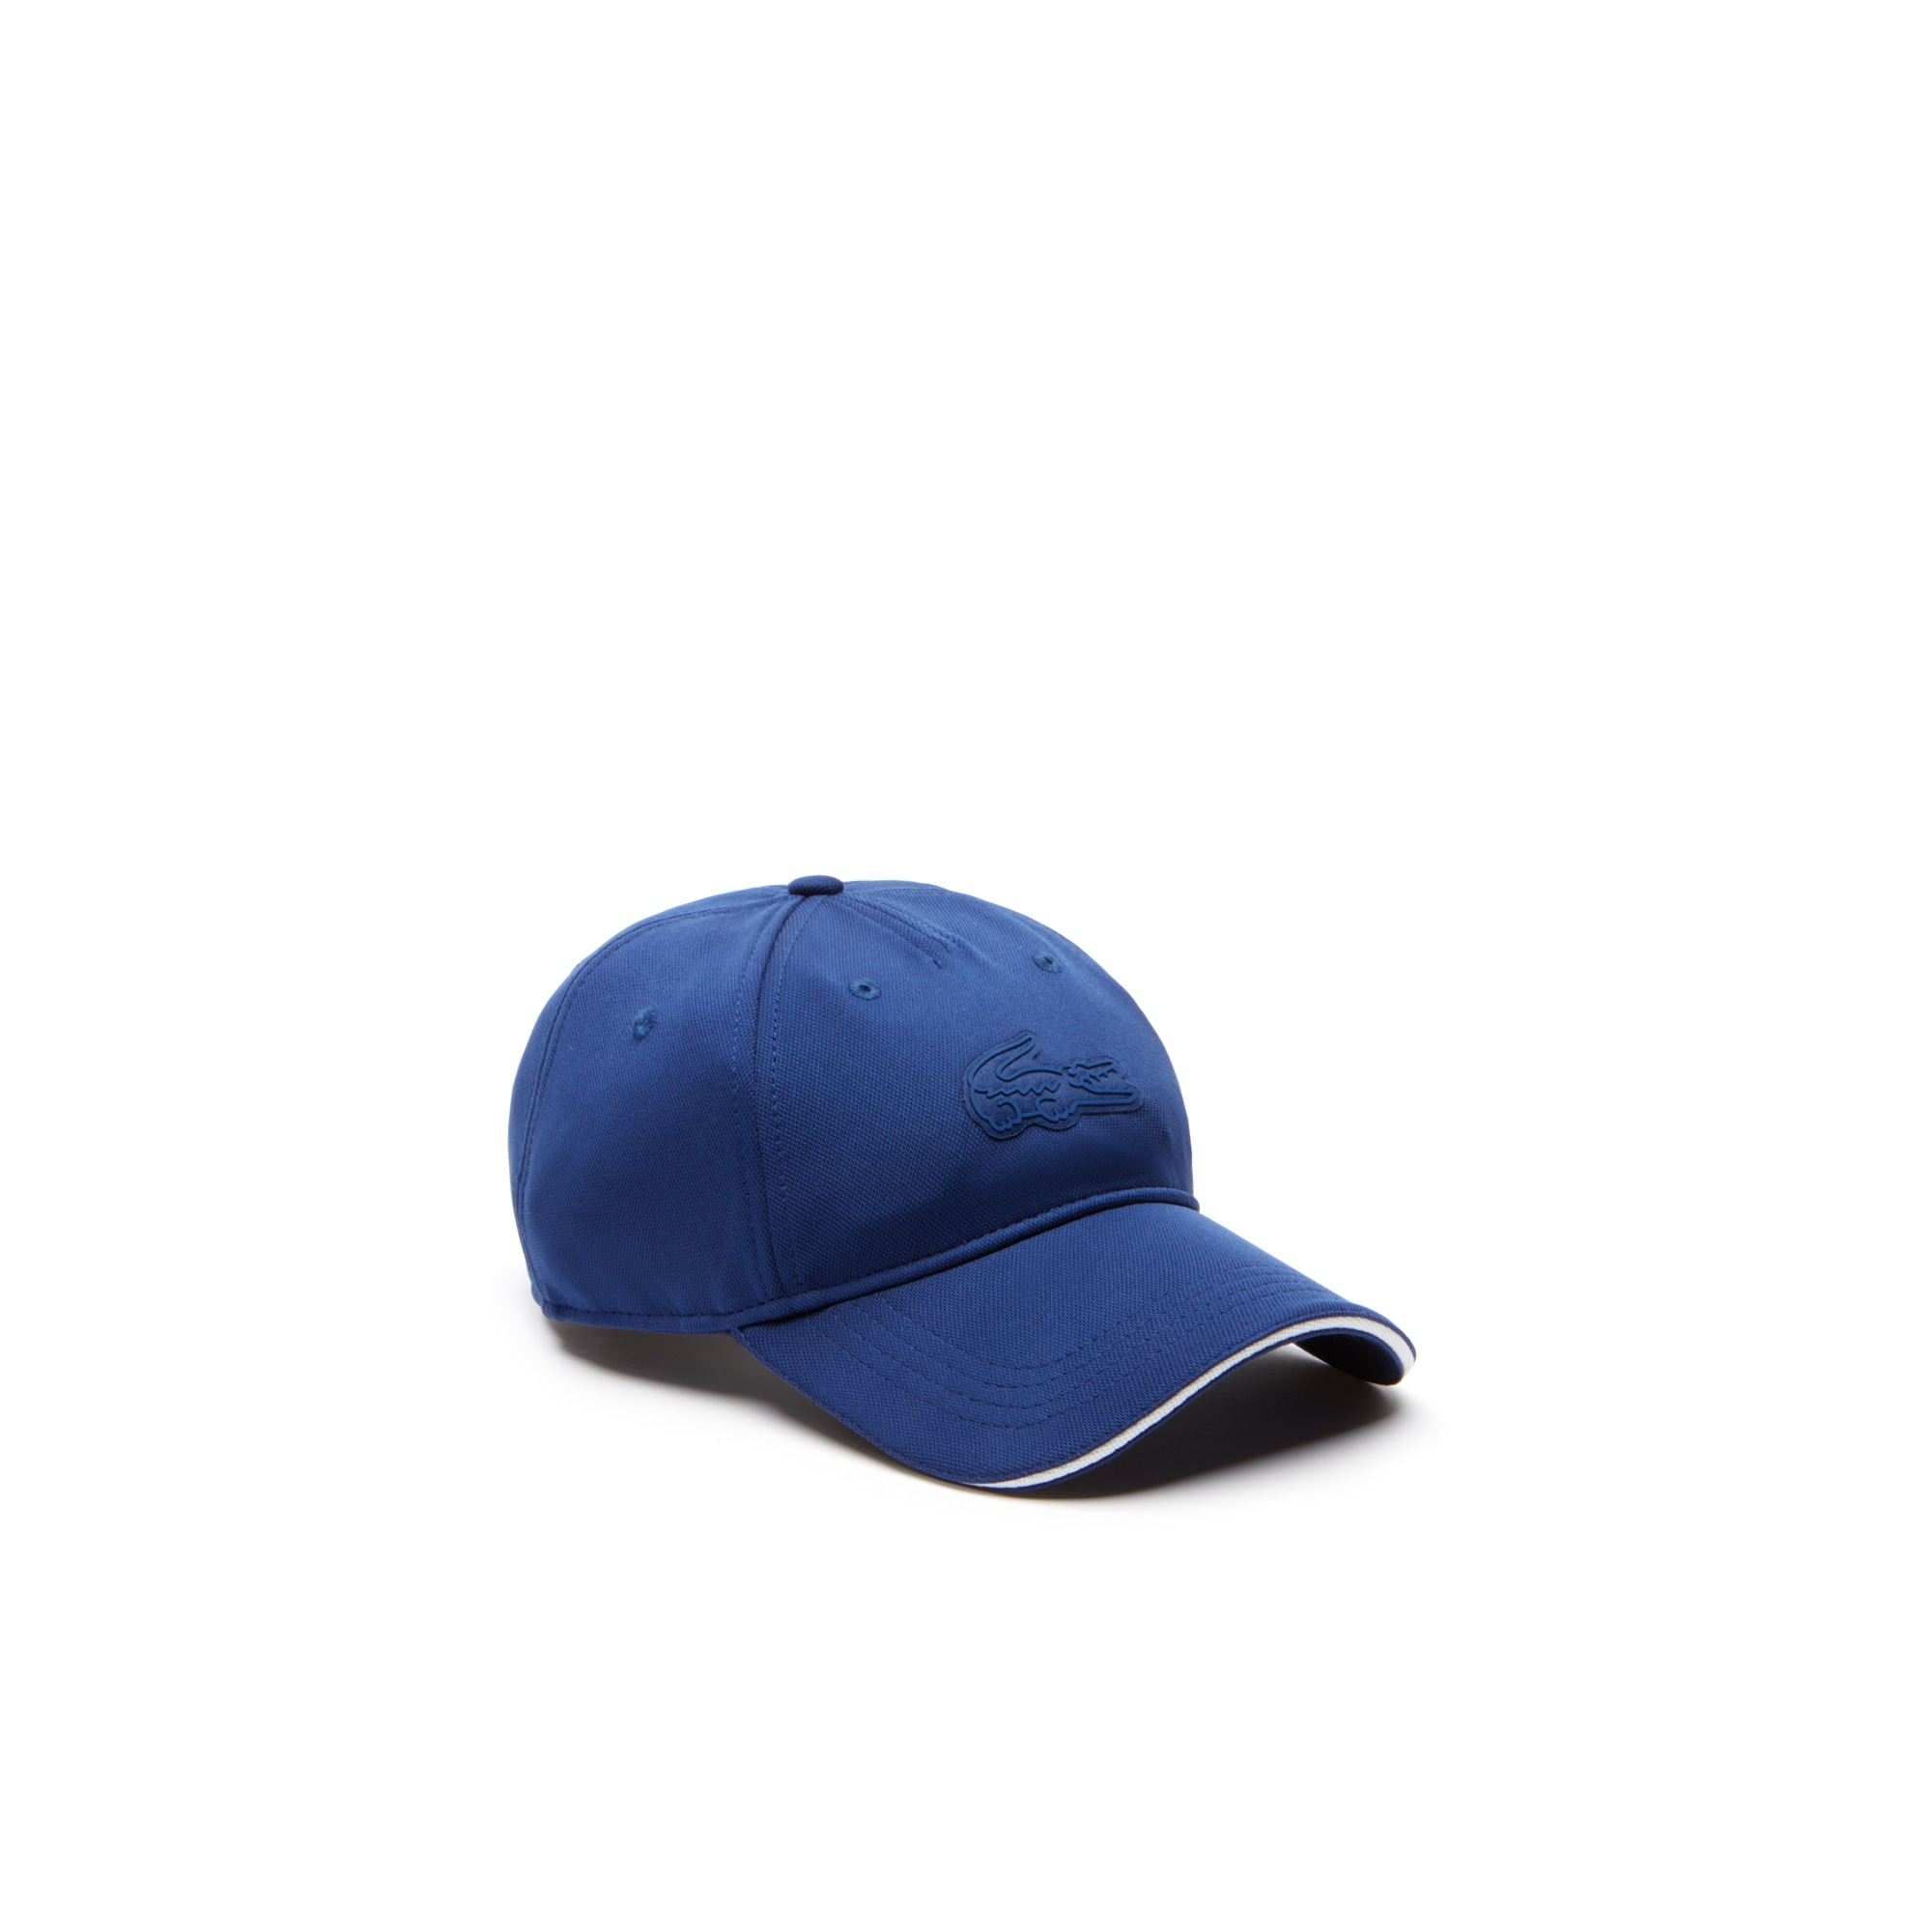 Unisex SPORT Oversized Crocodile Technical Piqué Golf Cap